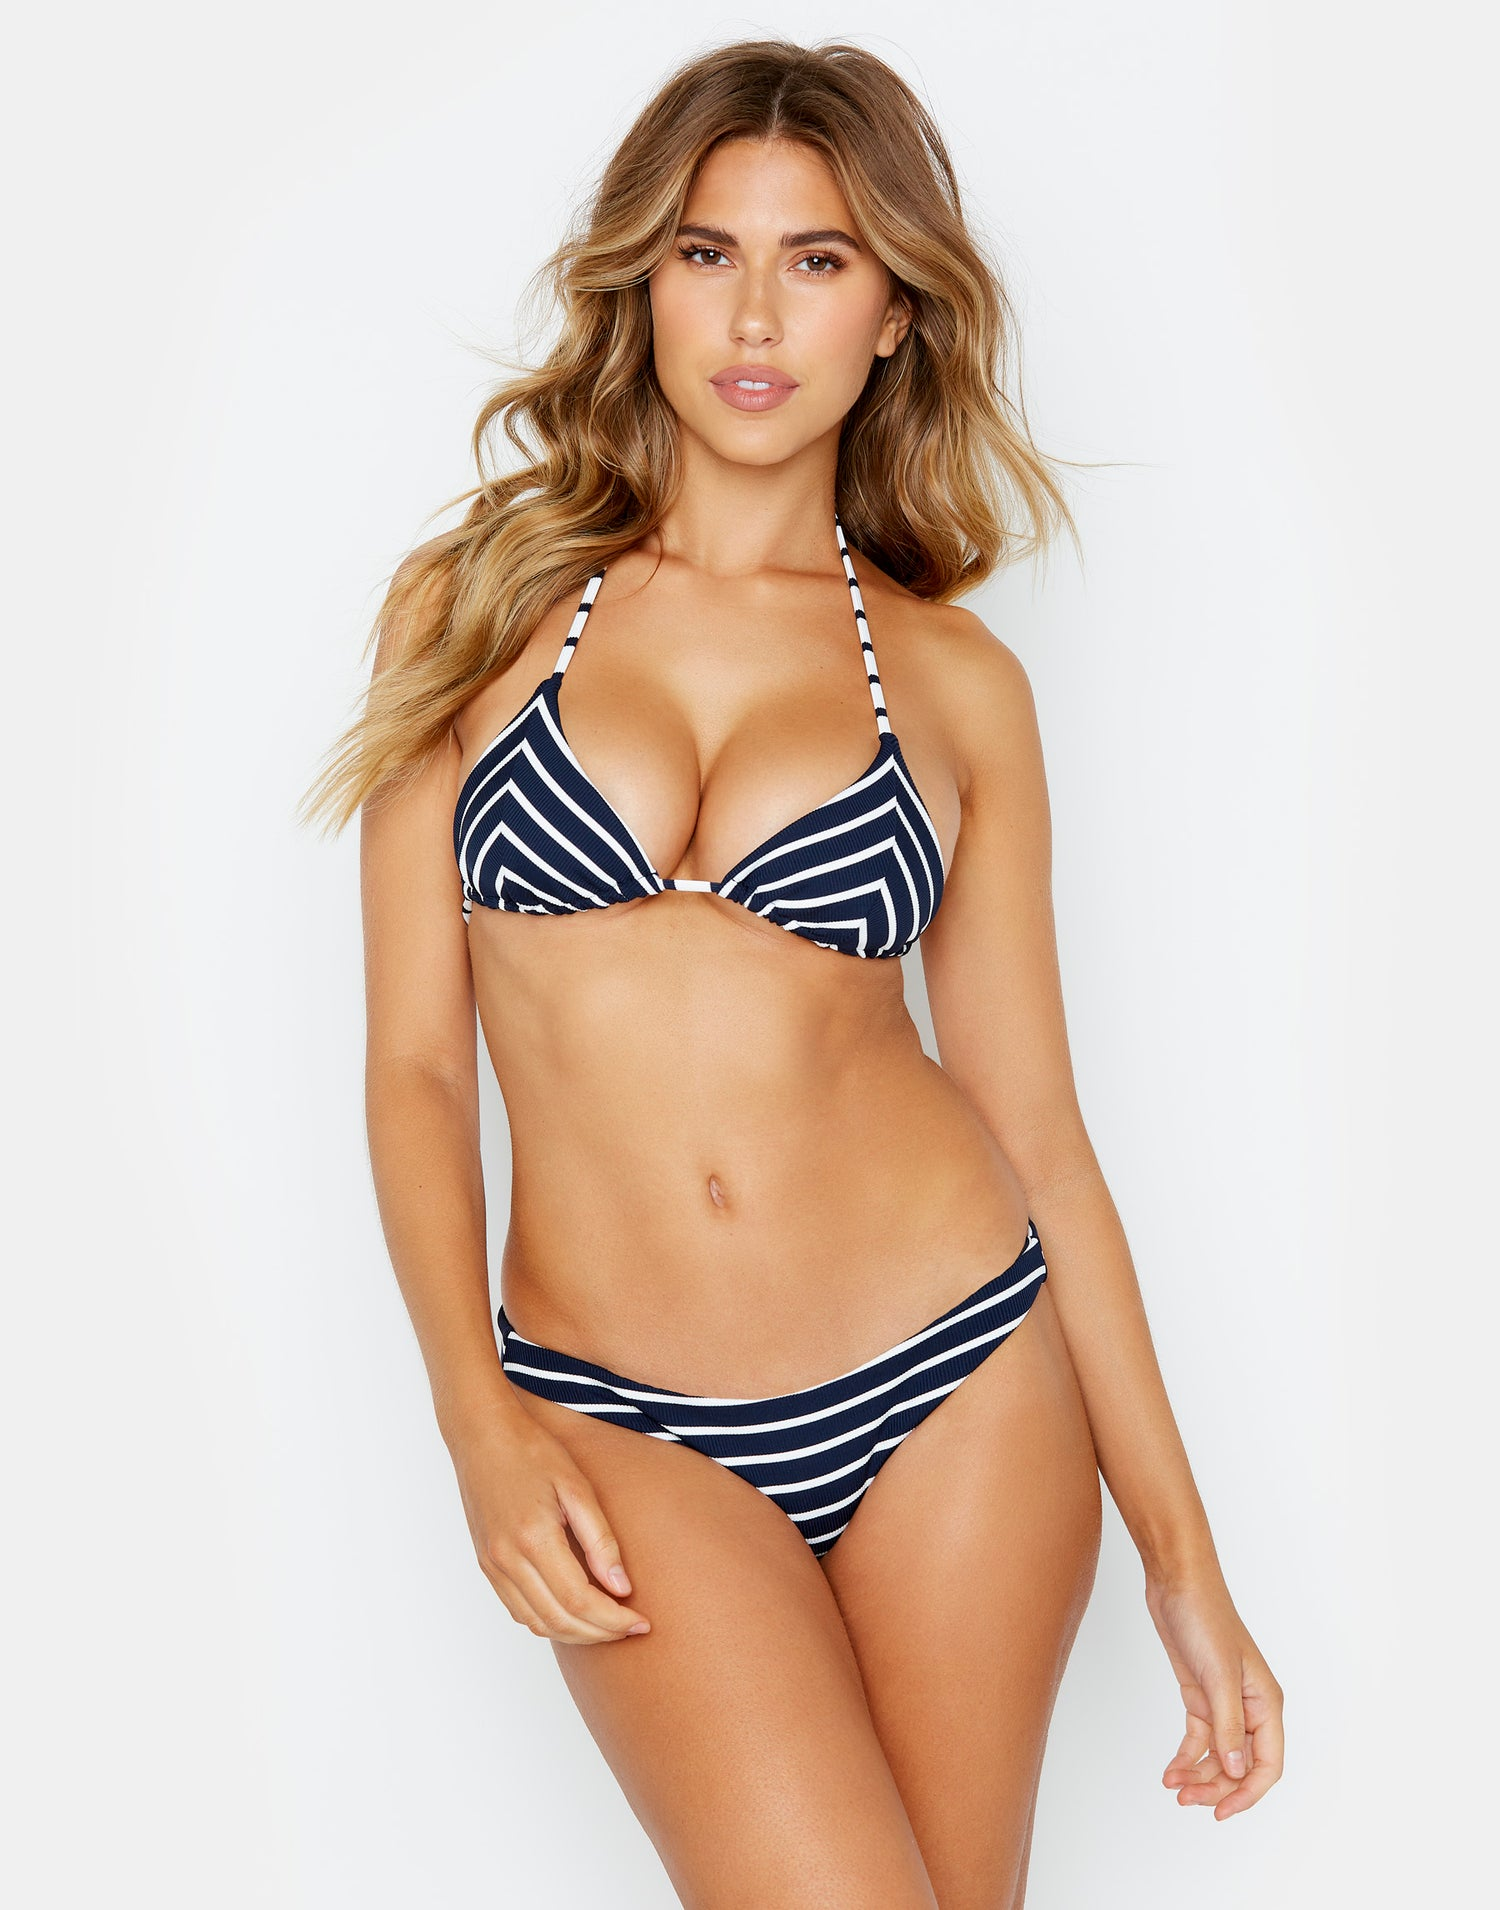 Angela Bikini Bottom in Navy Stripe Front View